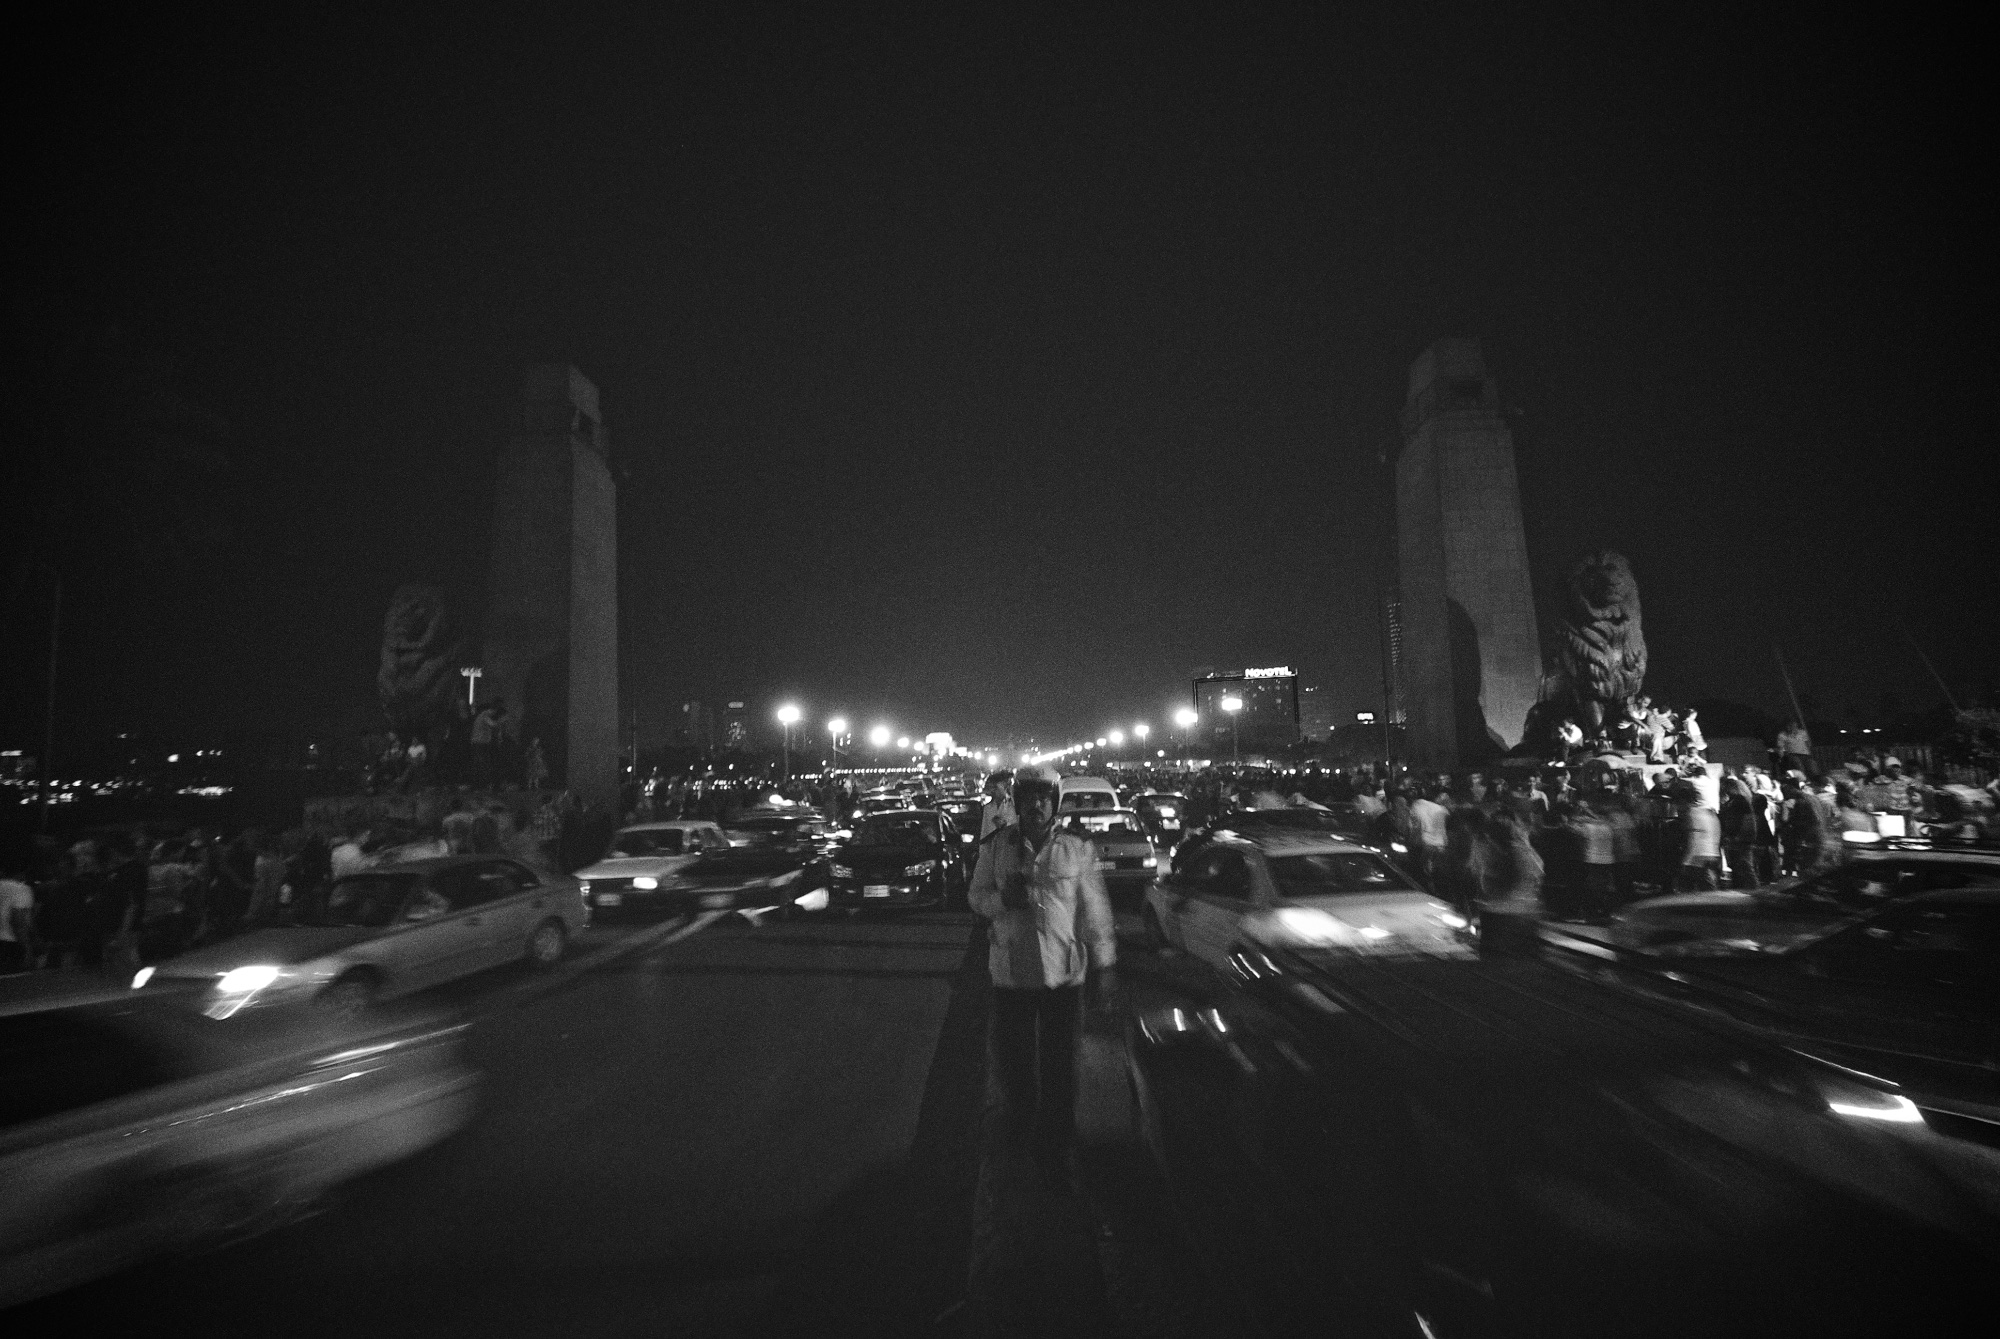 denis-bosnic-cairo-egypt-bw-photography-eid-al-fitr-policeman-traffic-bridge.jpg